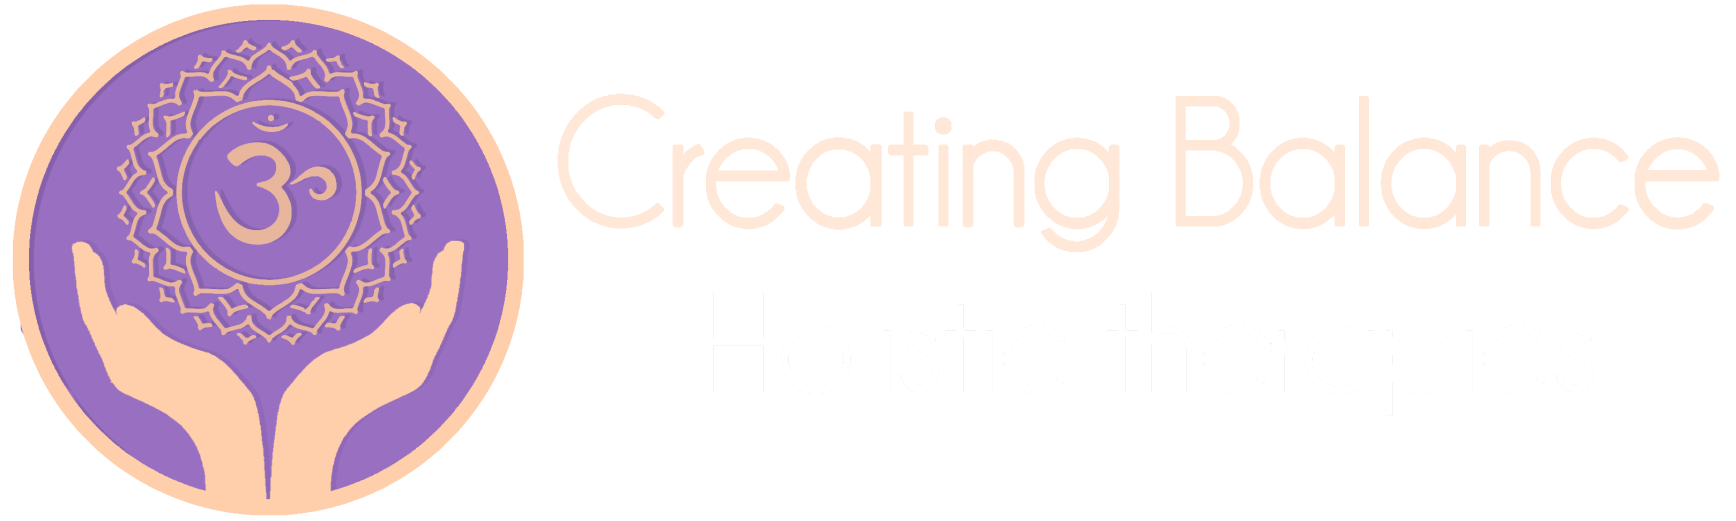 Creating Balance Holistic Therapies, Wirral